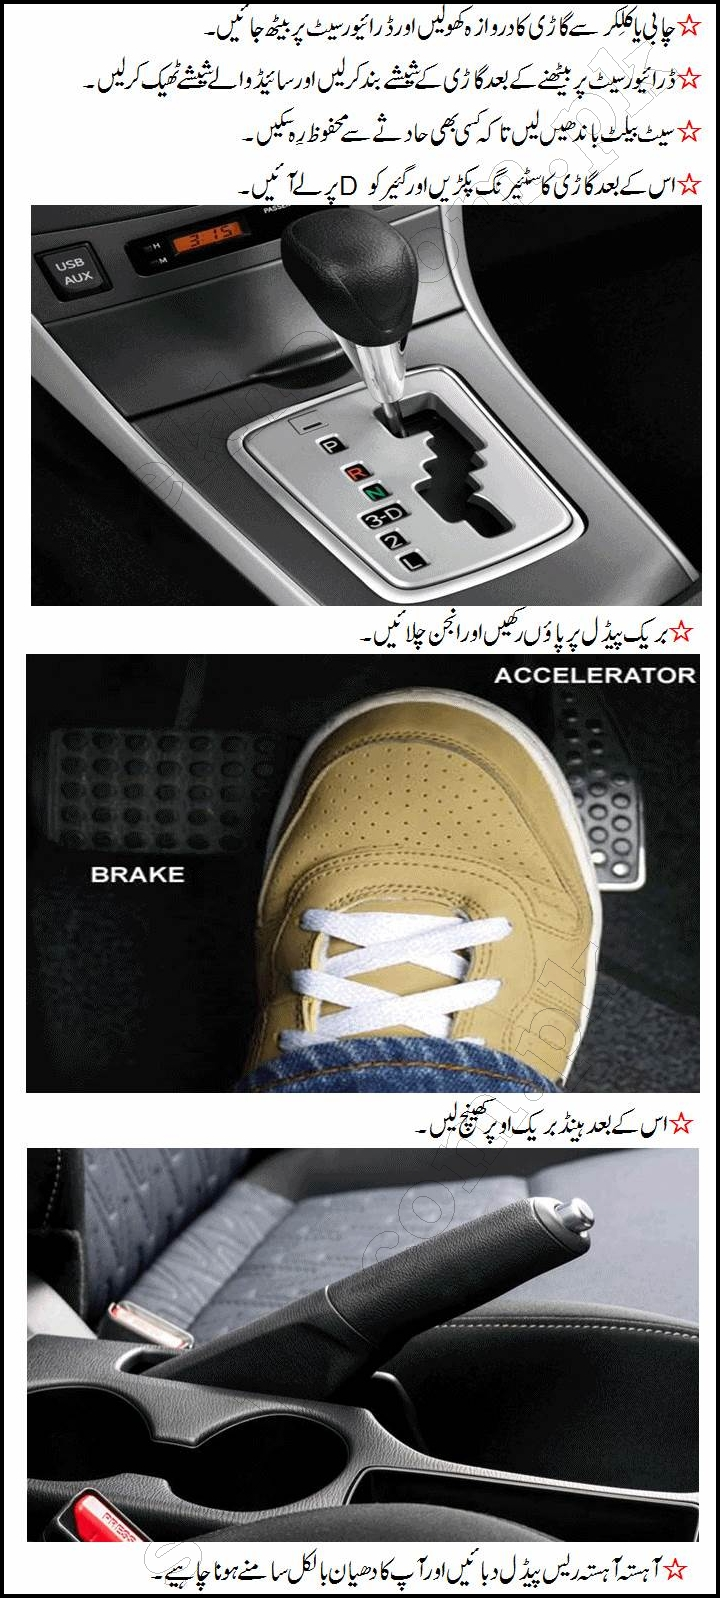 How To Drive A Aautomatic Car In Urdu